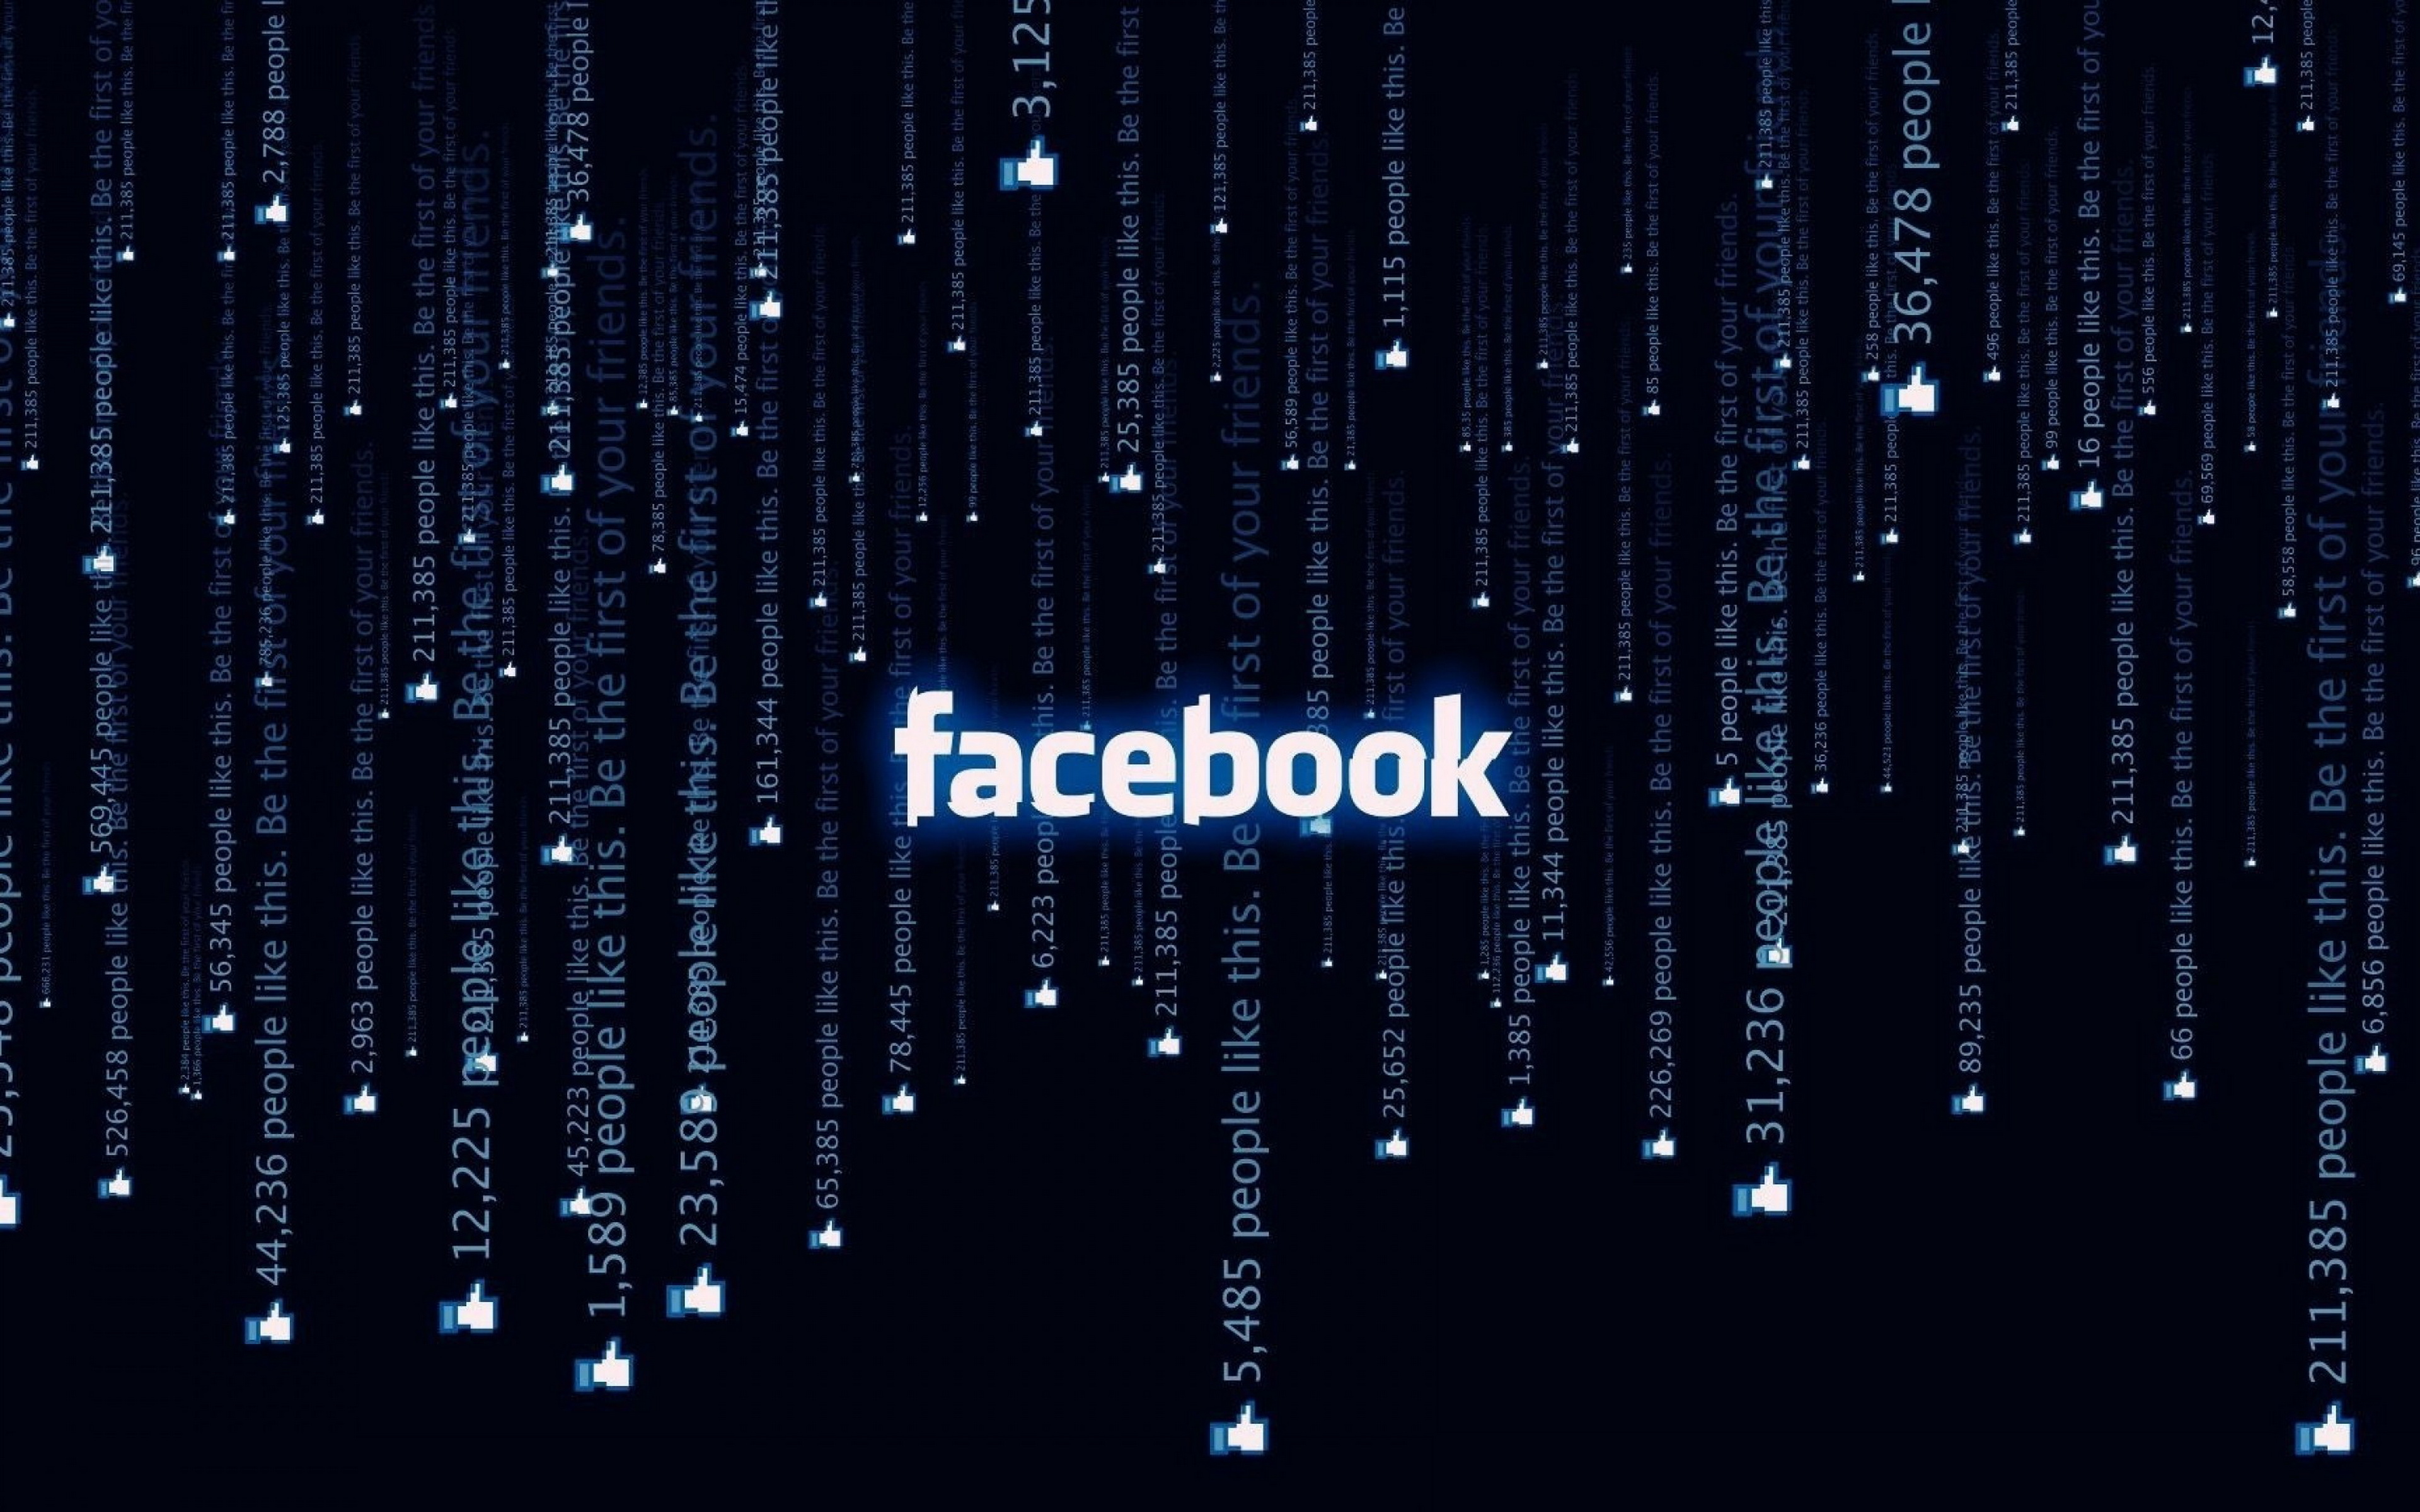 21 Facebook Backgrounds Social Networking Pictures: Facebook 4k Ultra HD Wallpaper